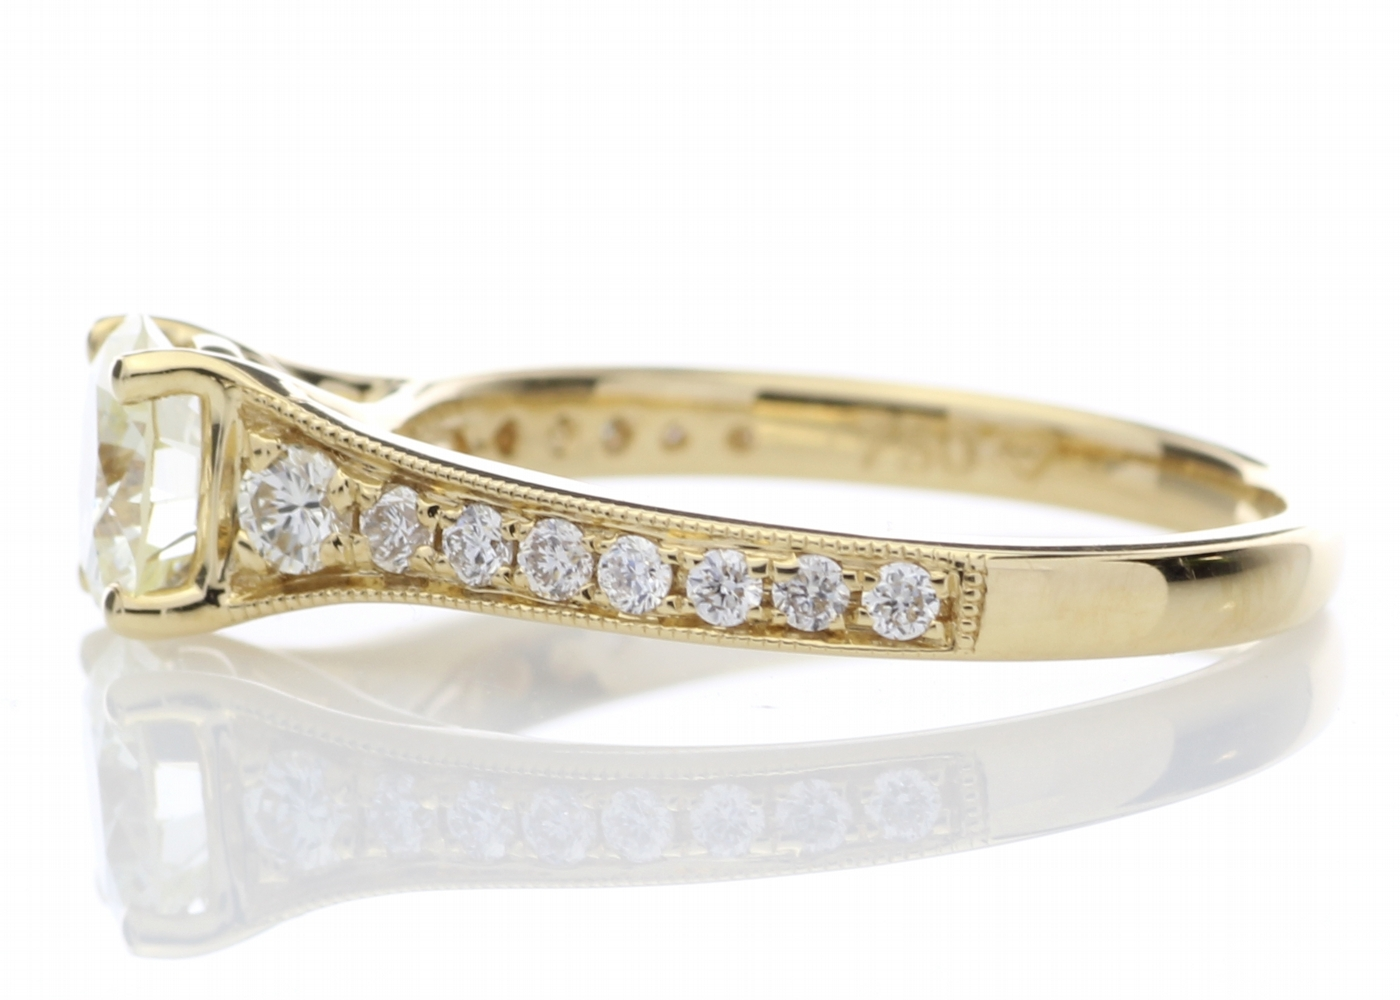 18ct Yellow Gold Diamond Ring With Stone Set Shoulders 1.06 Carats - Image 3 of 5